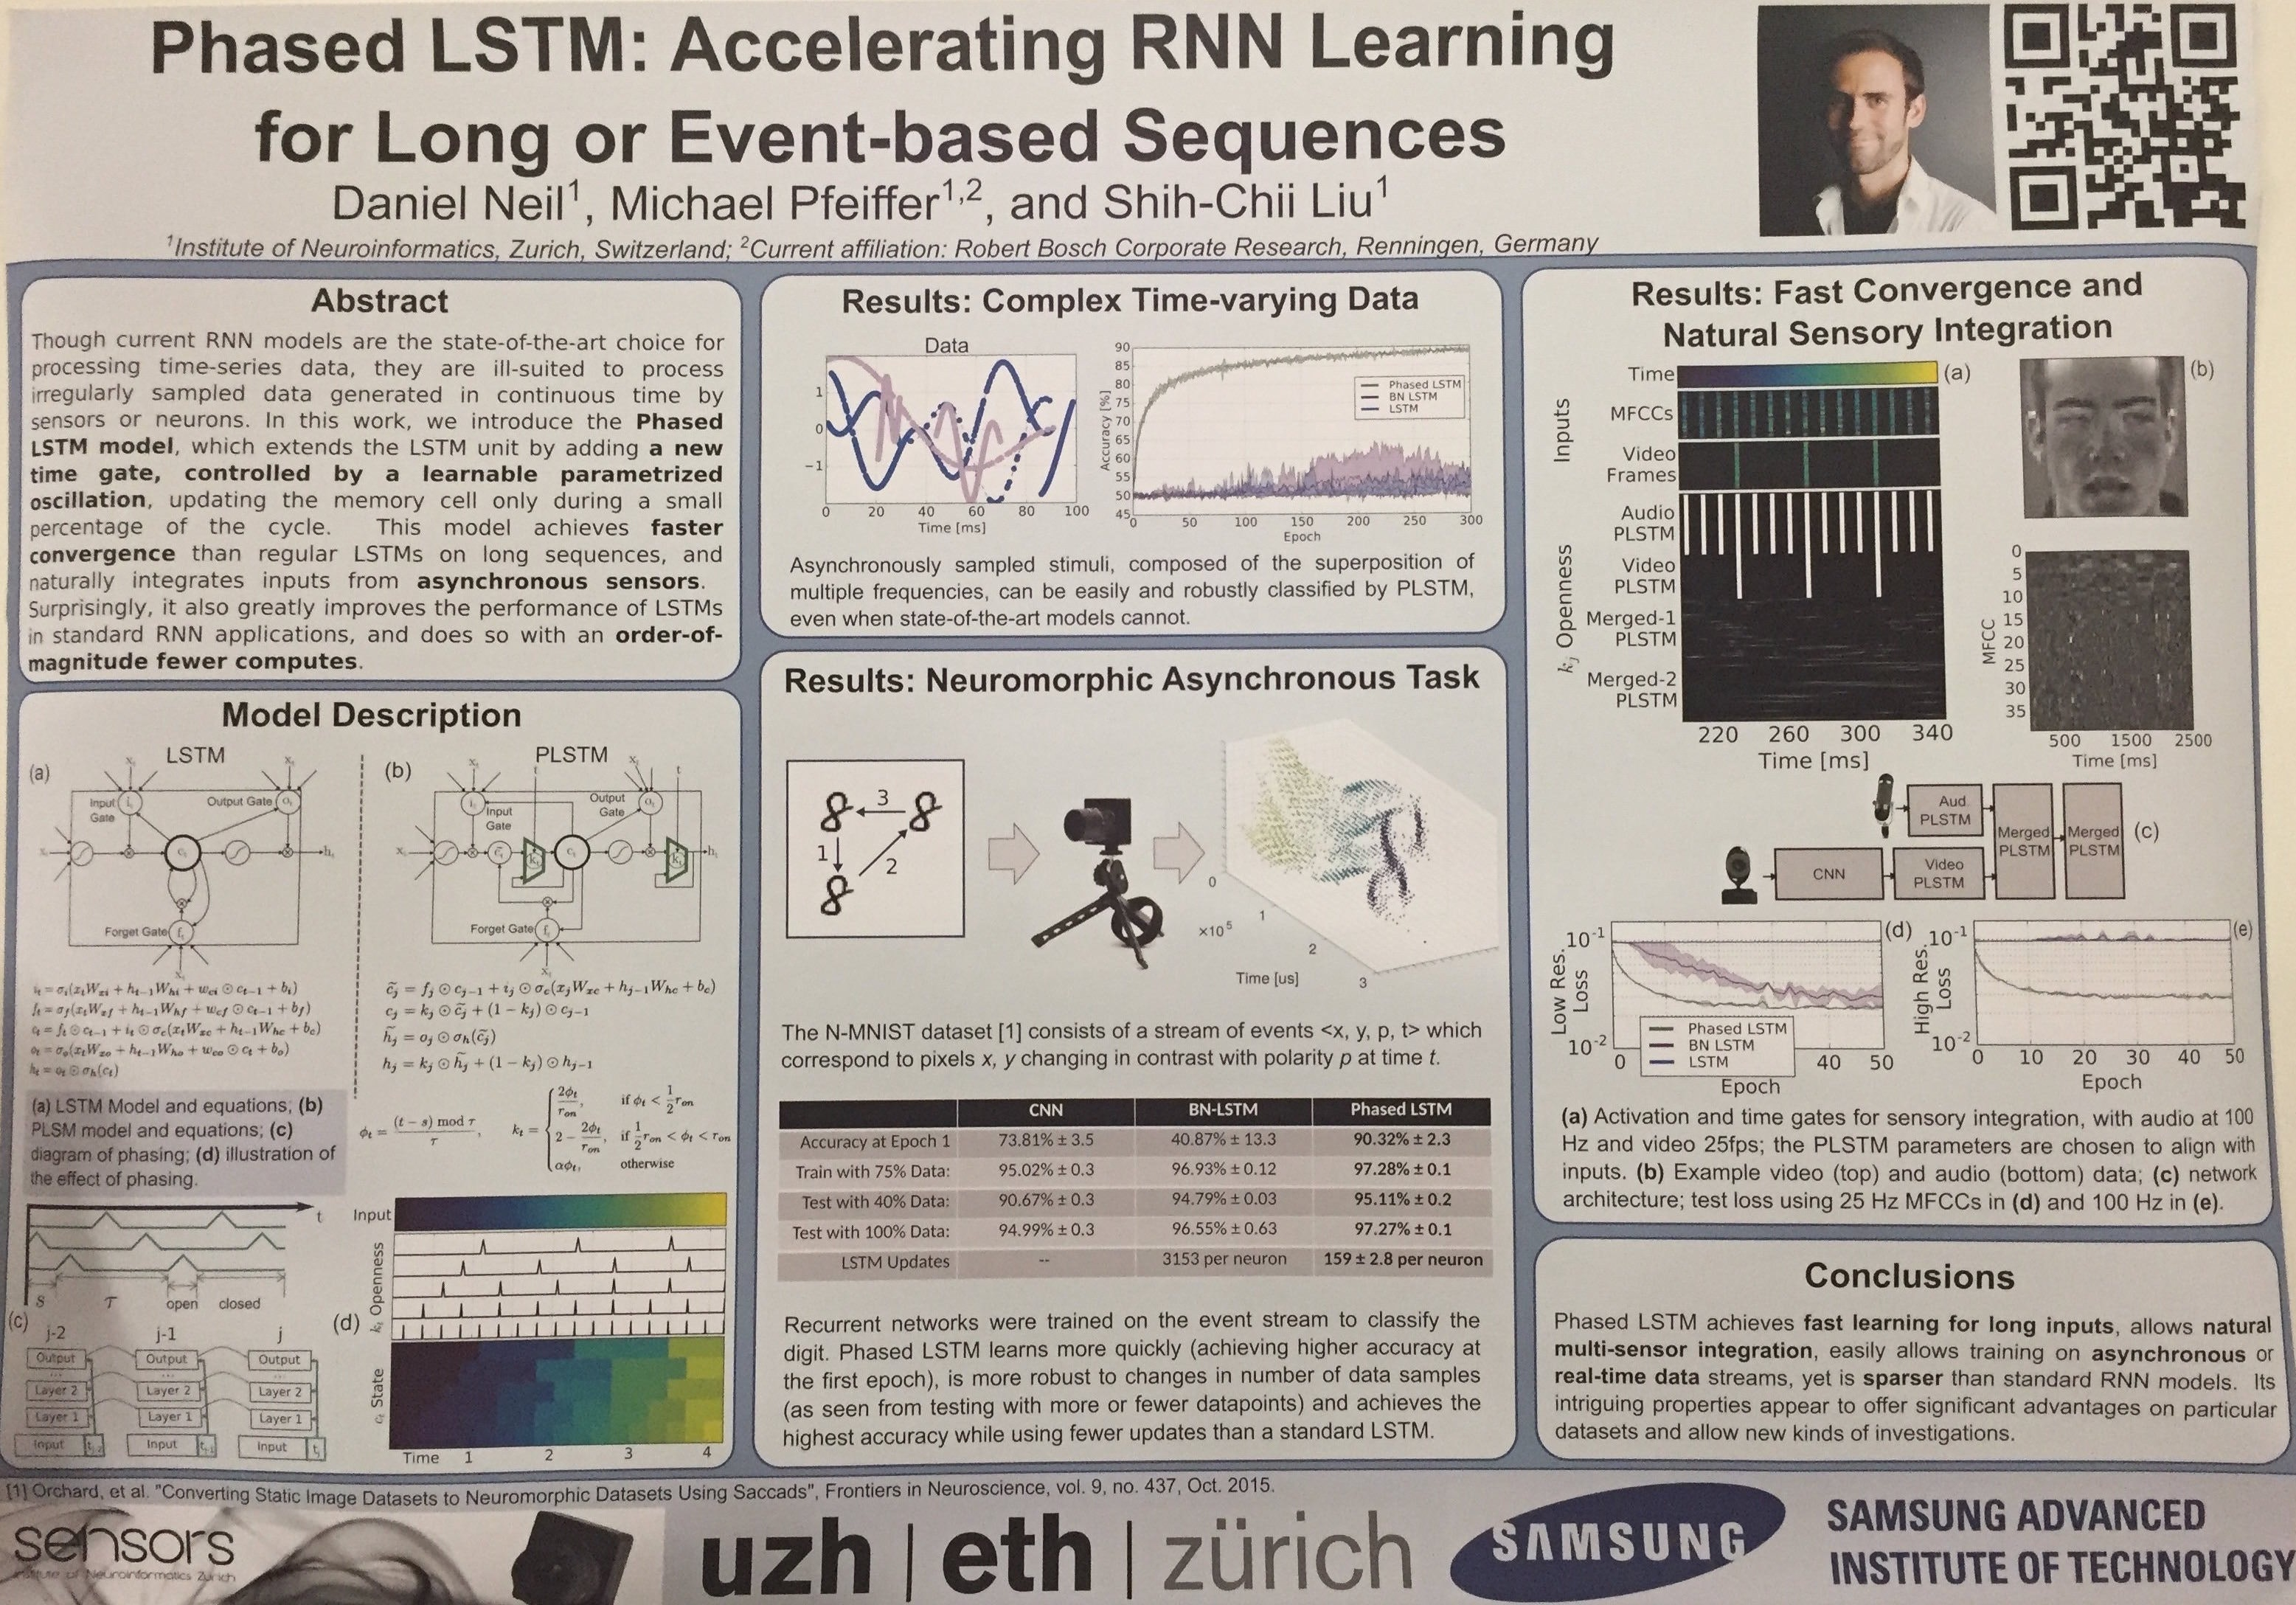 Neil_Phased_LSTM_Accelerating_RNN_Learning_for_Long_or_Event-based_Sequences.jpg